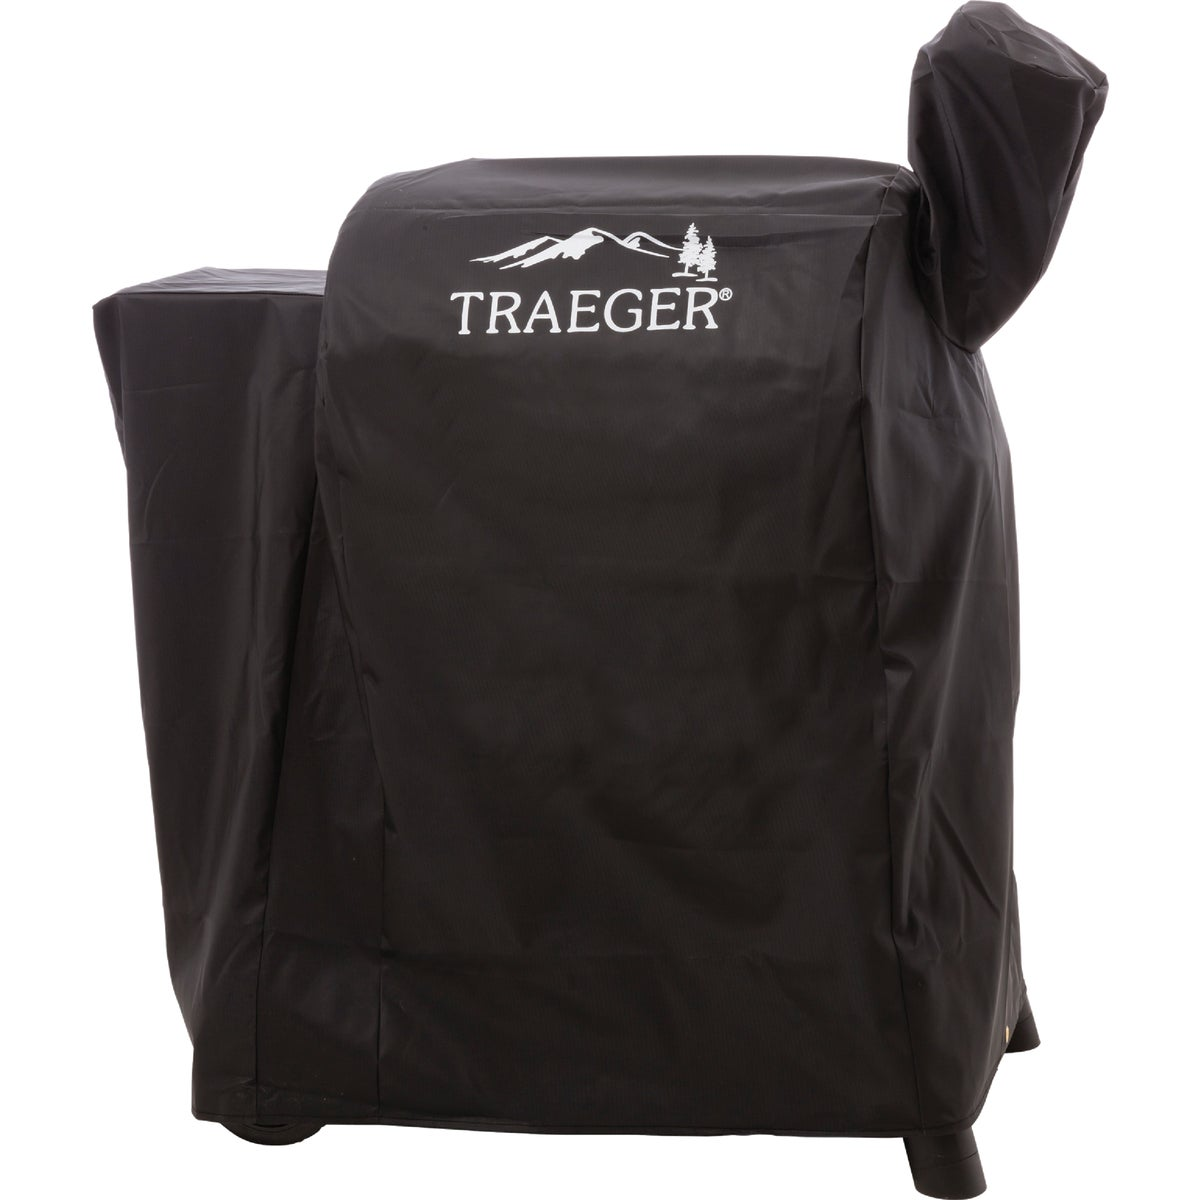 FORMFIT BBQ COVER - BAC260 by Traeger Industries